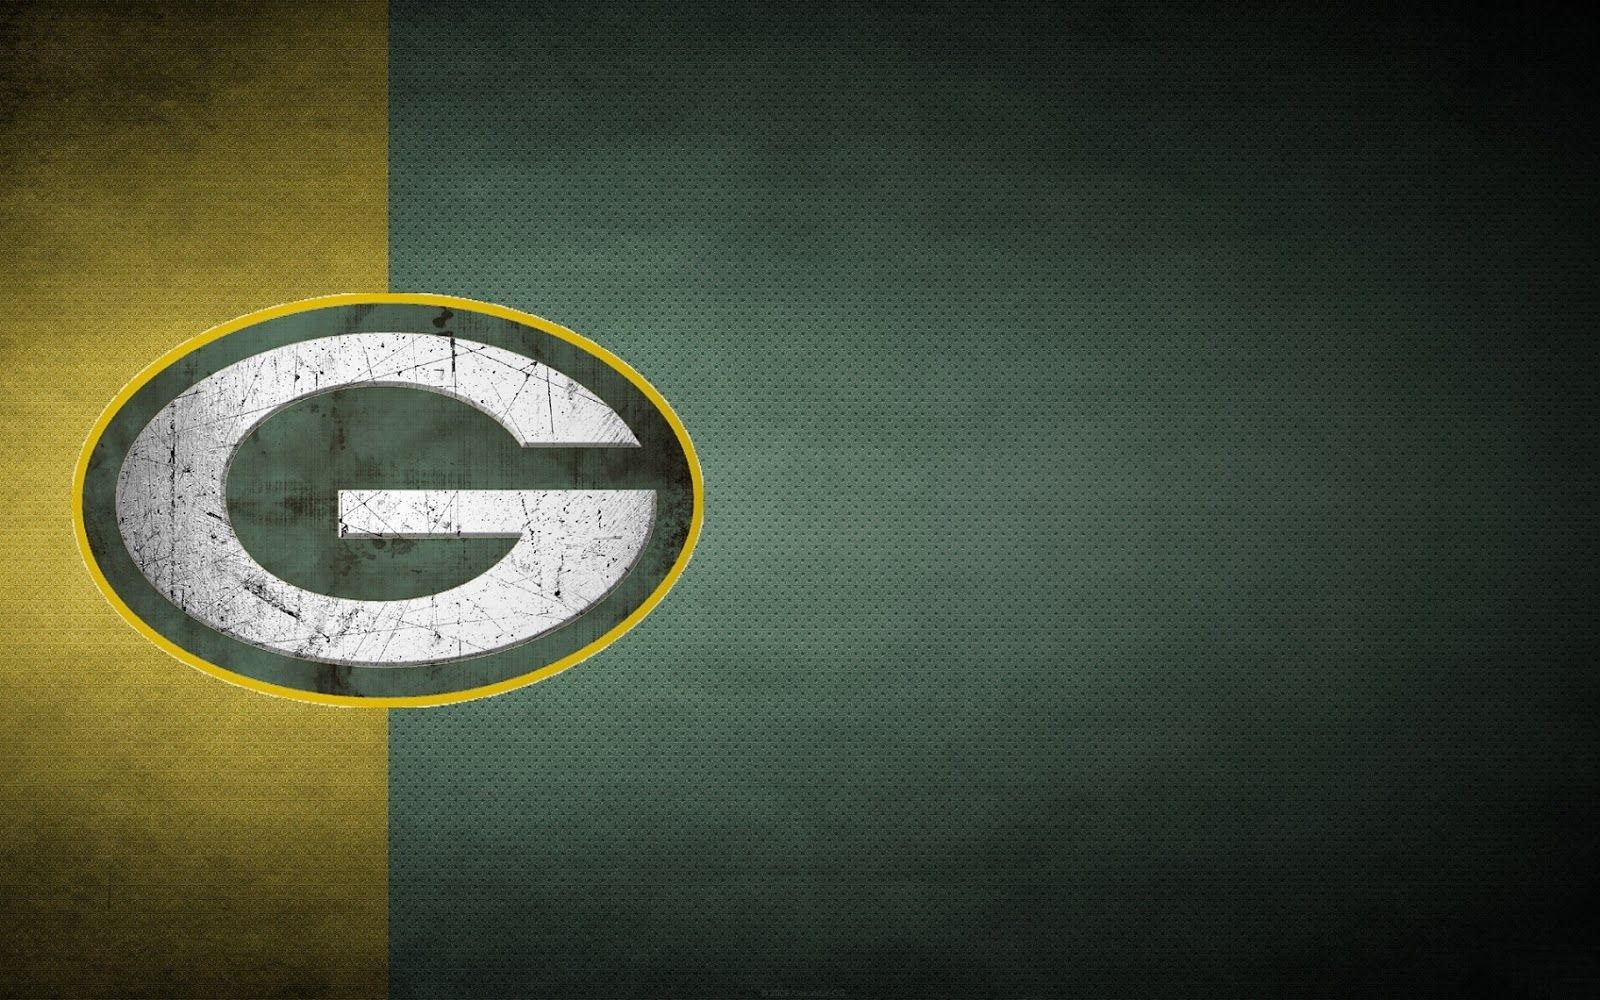 10 New Green Bay Packers Desktop Full Hd 1920 1080 For Pc Desktop In 2020 Green Bay Packers Wallpaper Green Bay Green Bay Packers